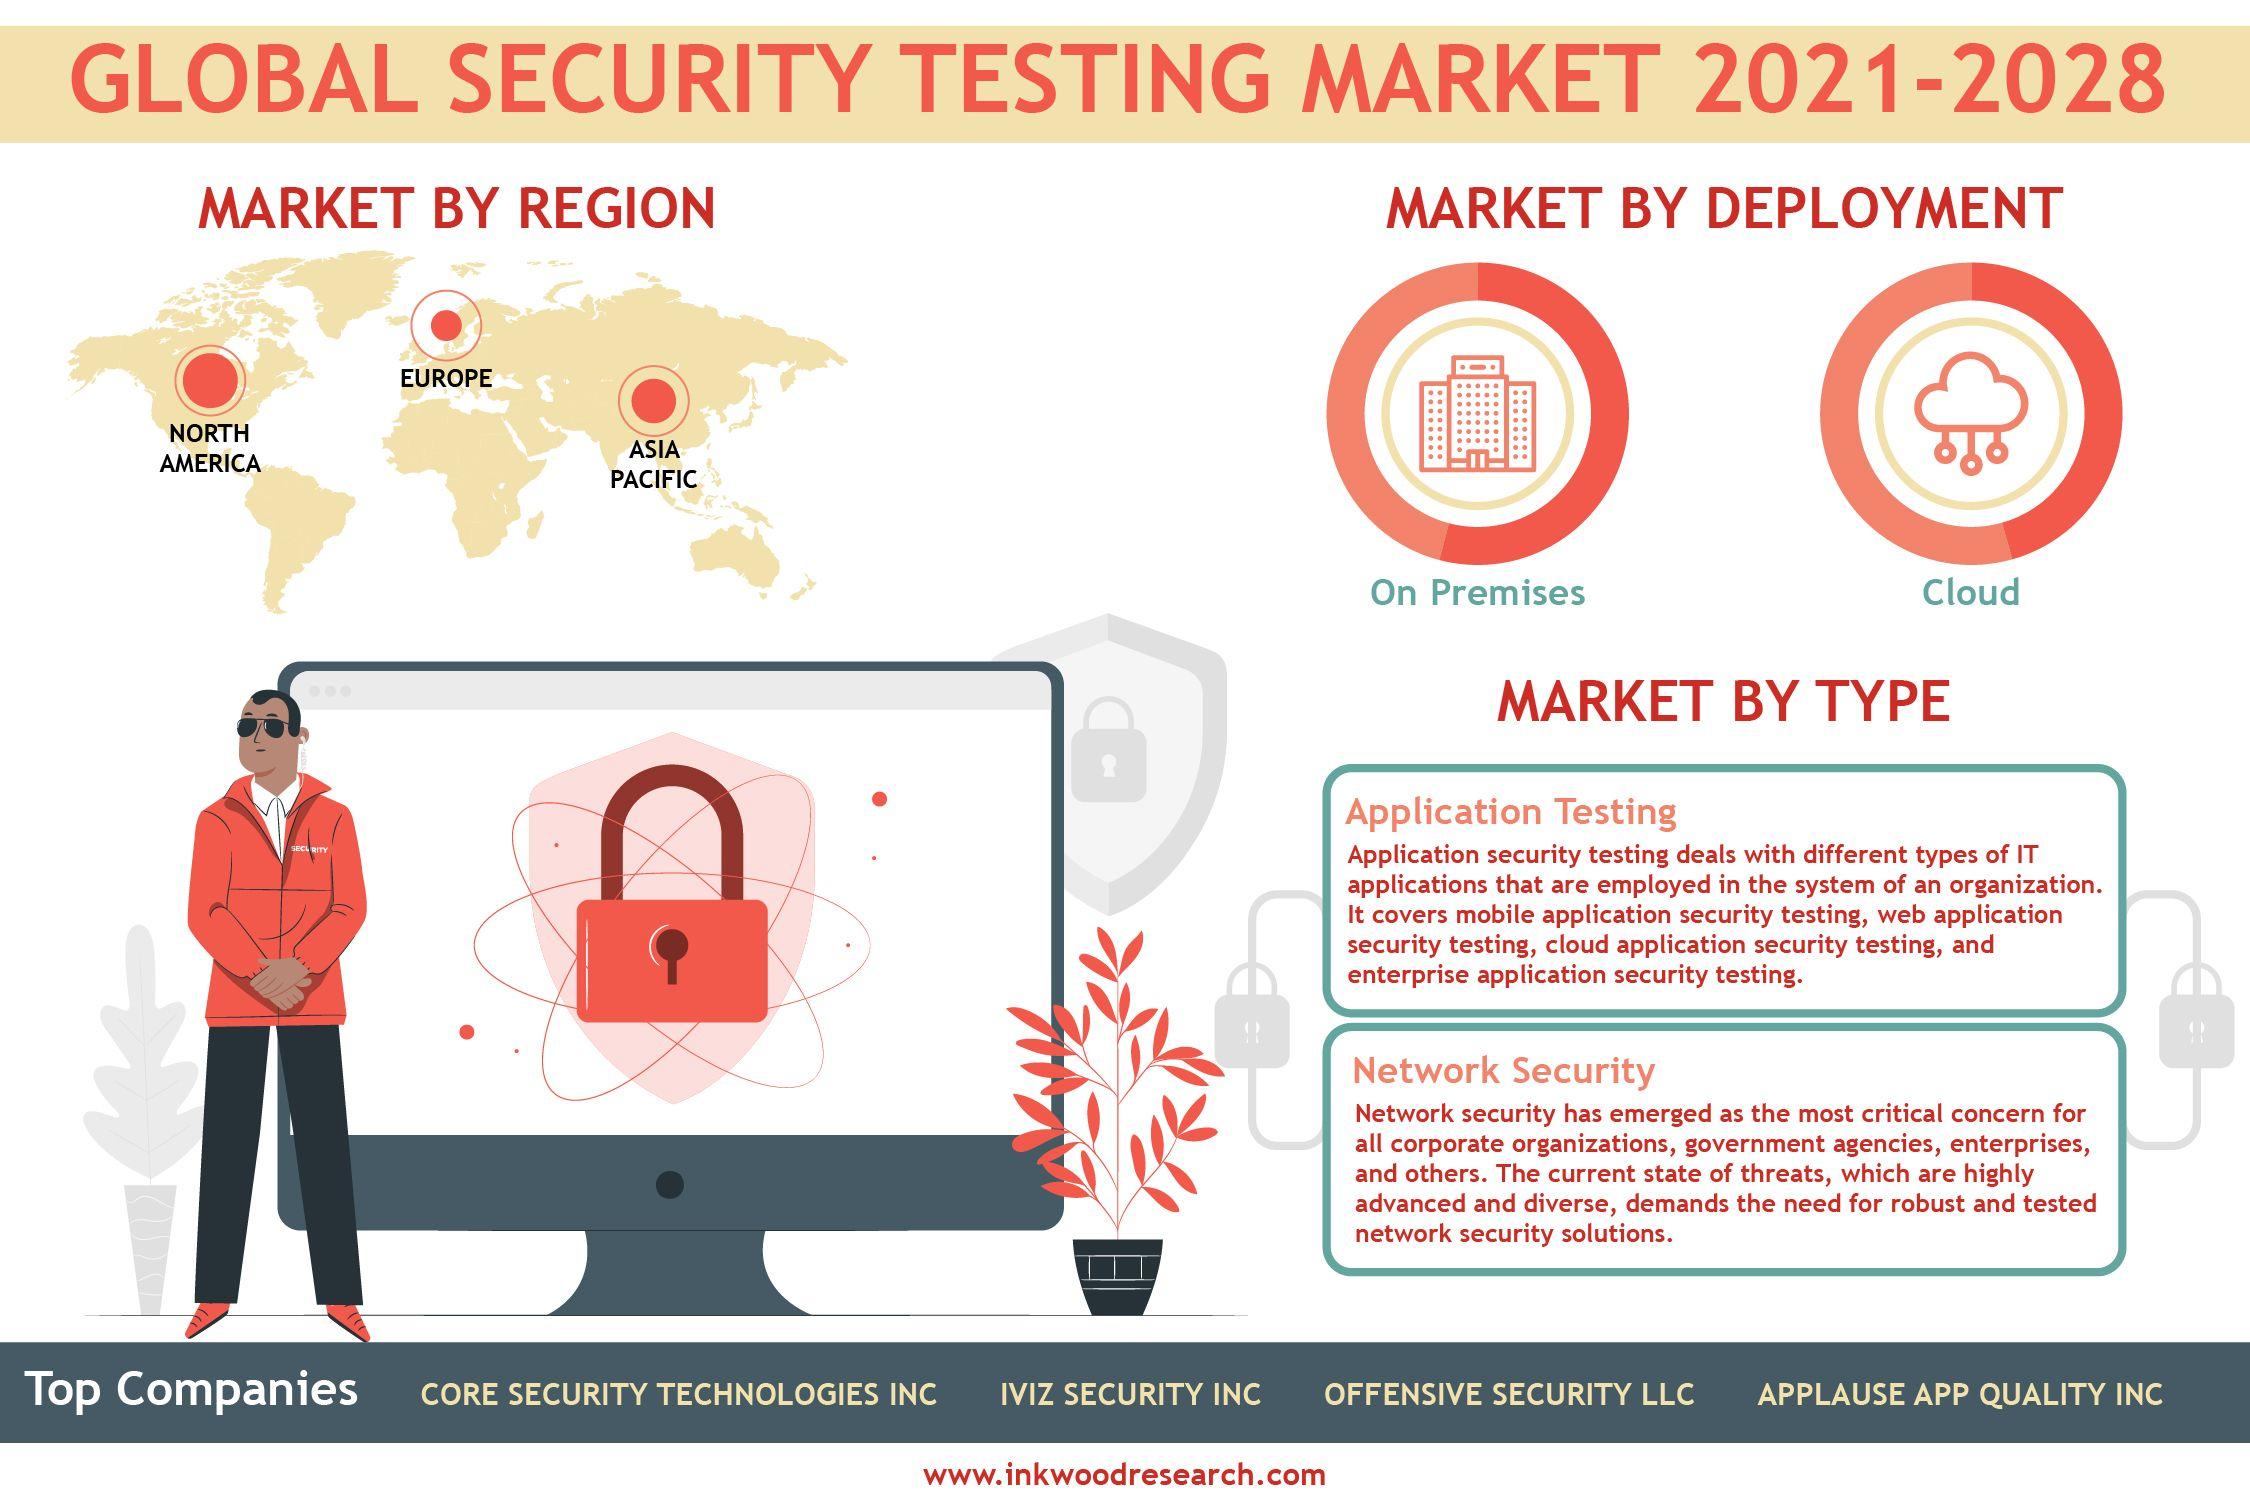 Growing Network Attacks To Propel The Global Security Testing Market Europe Technology Uk Us In 2020 Enterprise Application Marketing Trends Security Technology